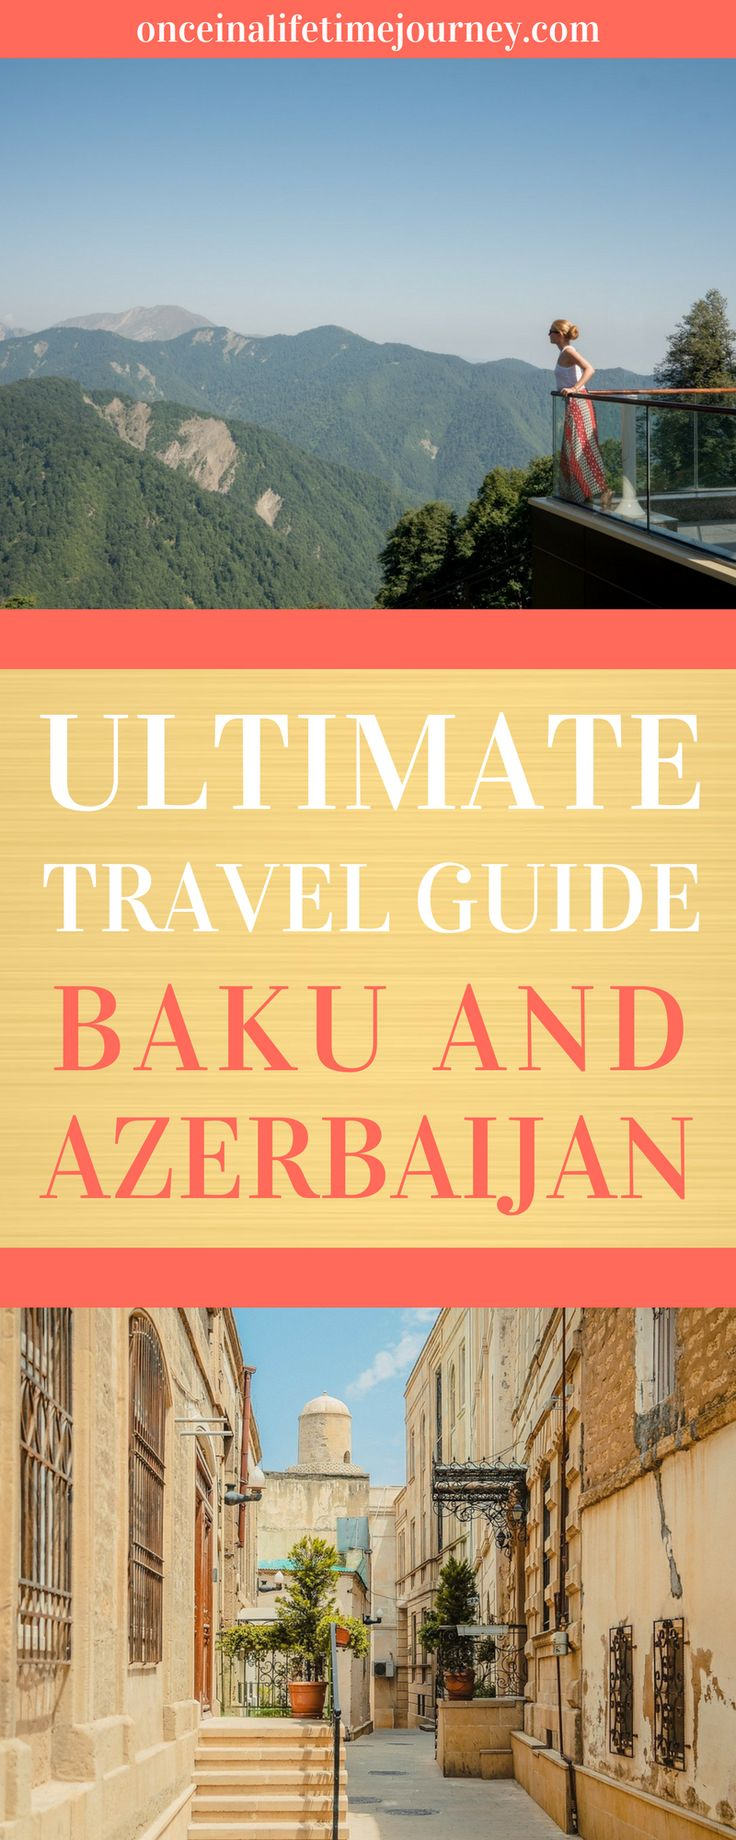 You may have never heard Azerbaijan before but I assure you that there is so much to see and do there. Click through to read my Ultimate Guide to the best places and activities in Baku and Azerbaijan - everything you need to know before going to Azerbaijan, from the best places to visit to the best restaurants, foods to try, sights and activities and even the best places to stay. | Once in a Lifetime Journey #azerbaijan #baku #offthebeatenpath